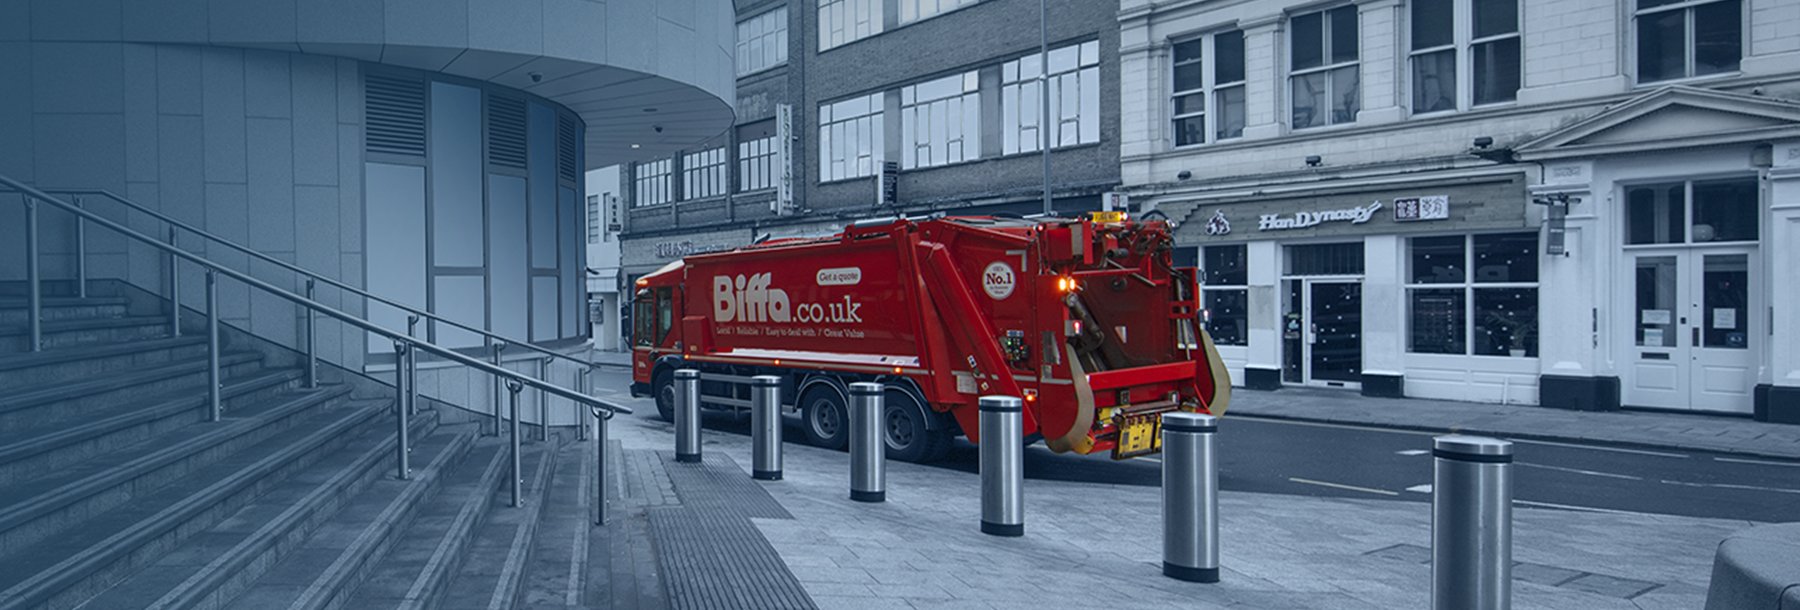 Biffa Business Waste truck, New Street Station Birmingham